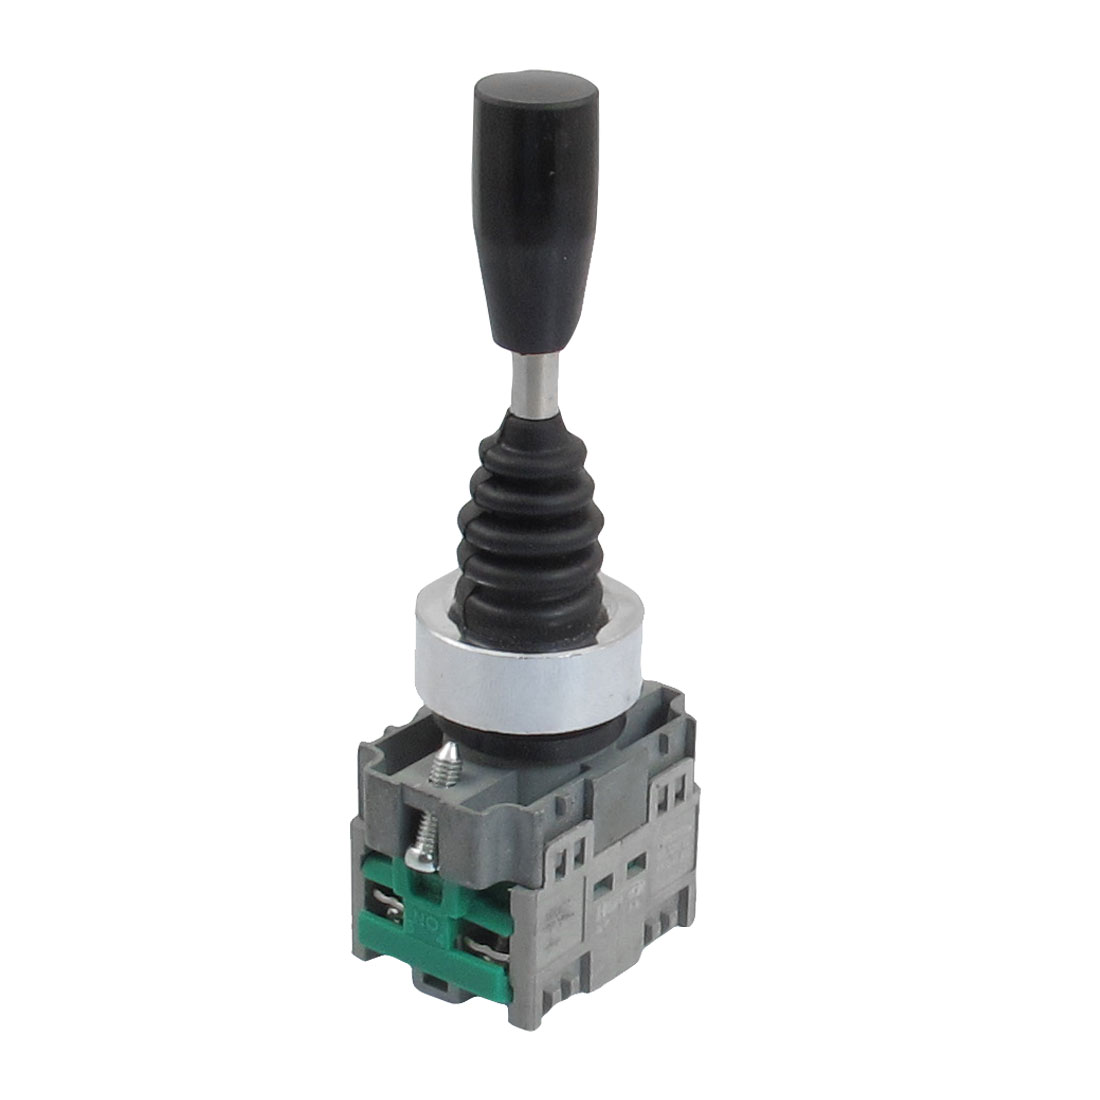 AC 400V 10A 2NO Momentary 22mm Fixing Thread 2 Way Joystick Switch